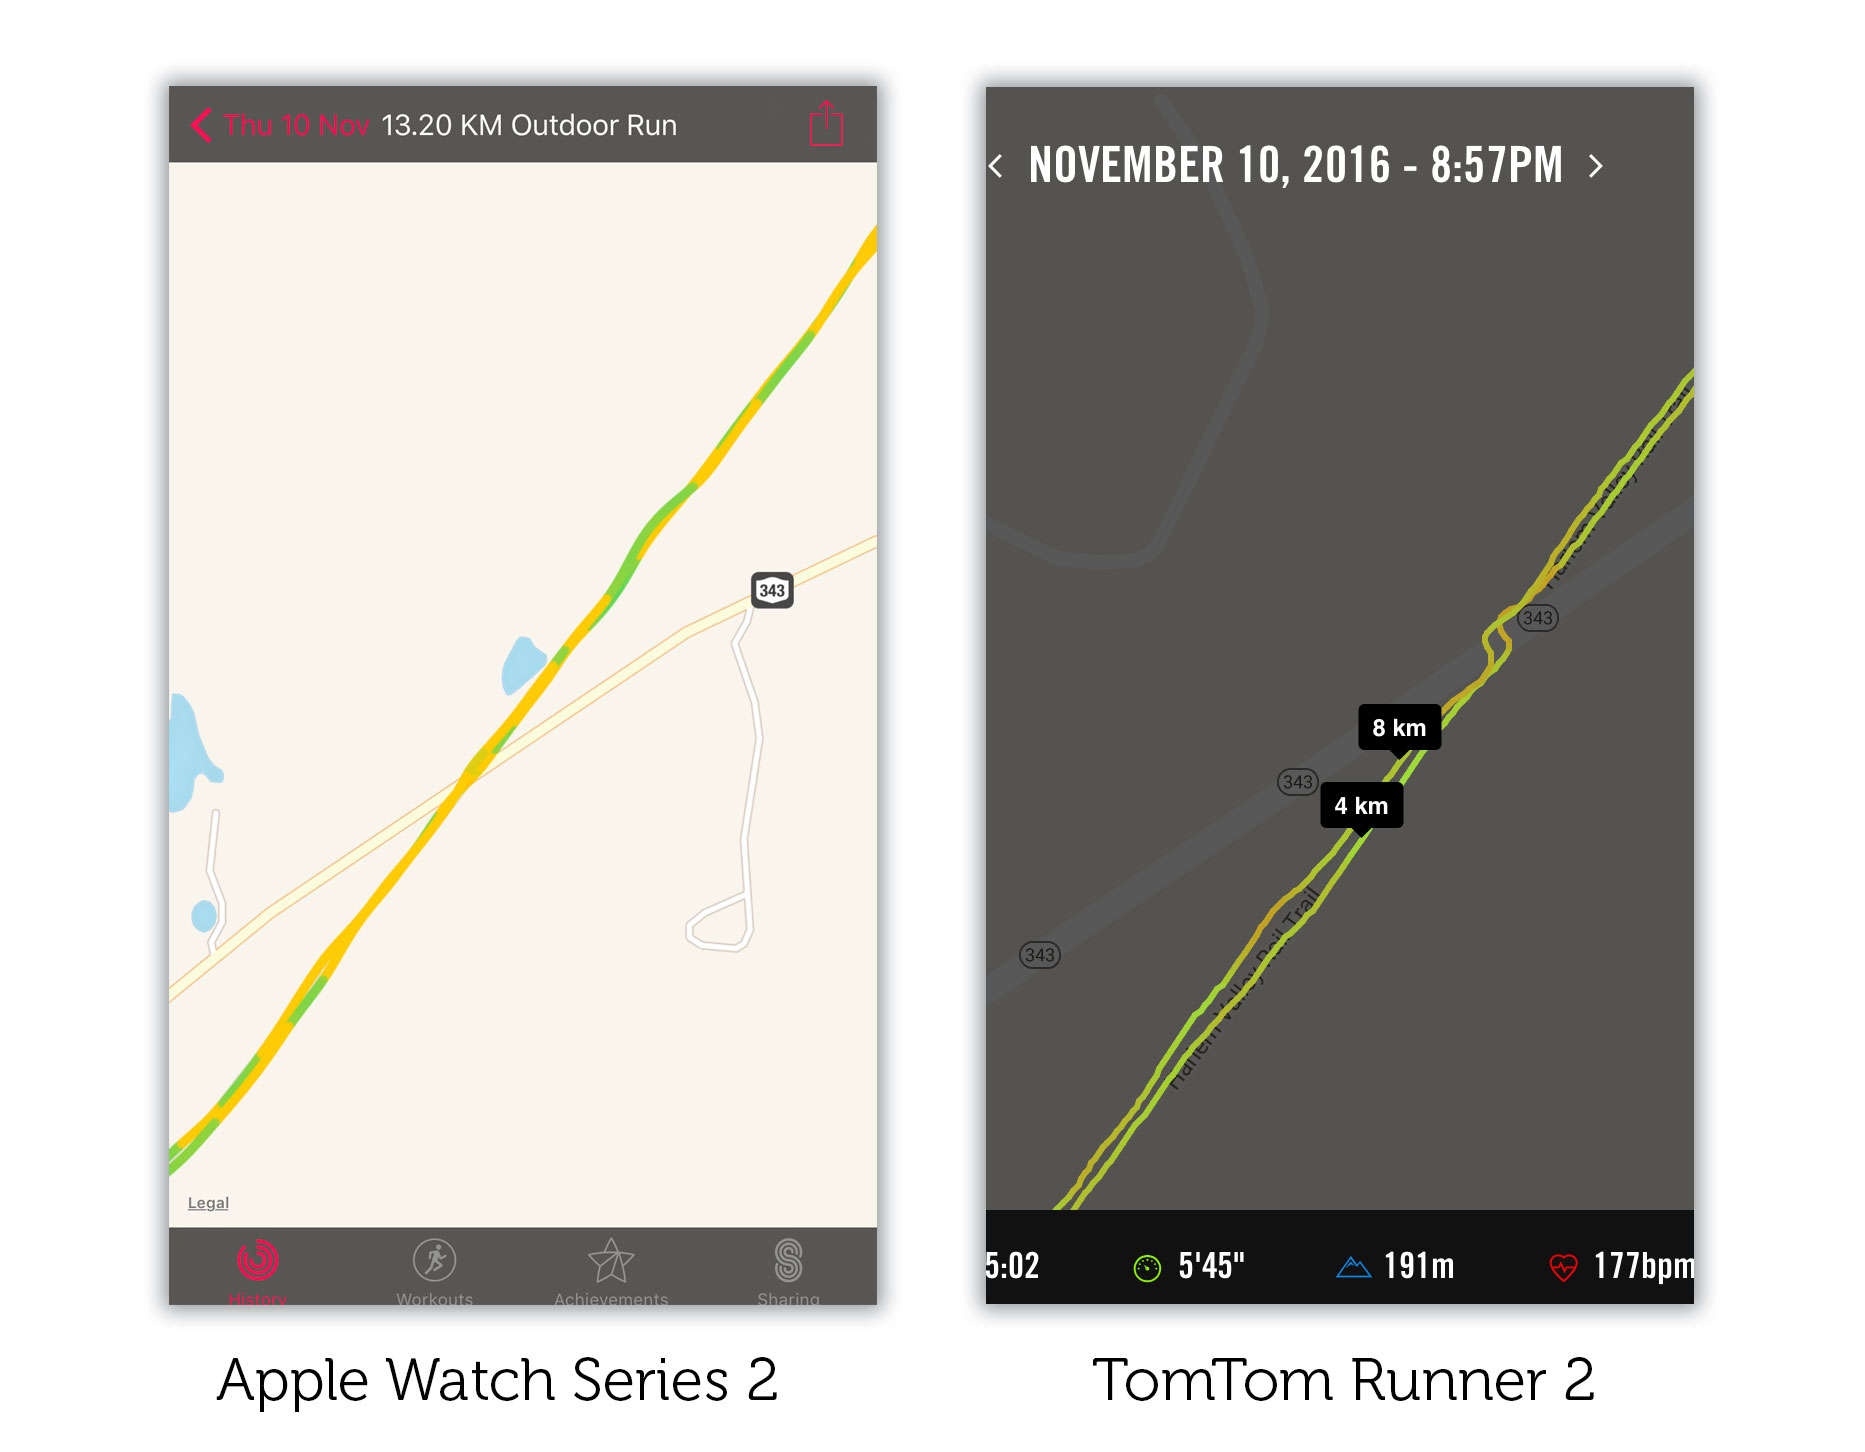 How did the chicken cross the road? Apple Watch and TomTom mapping compared